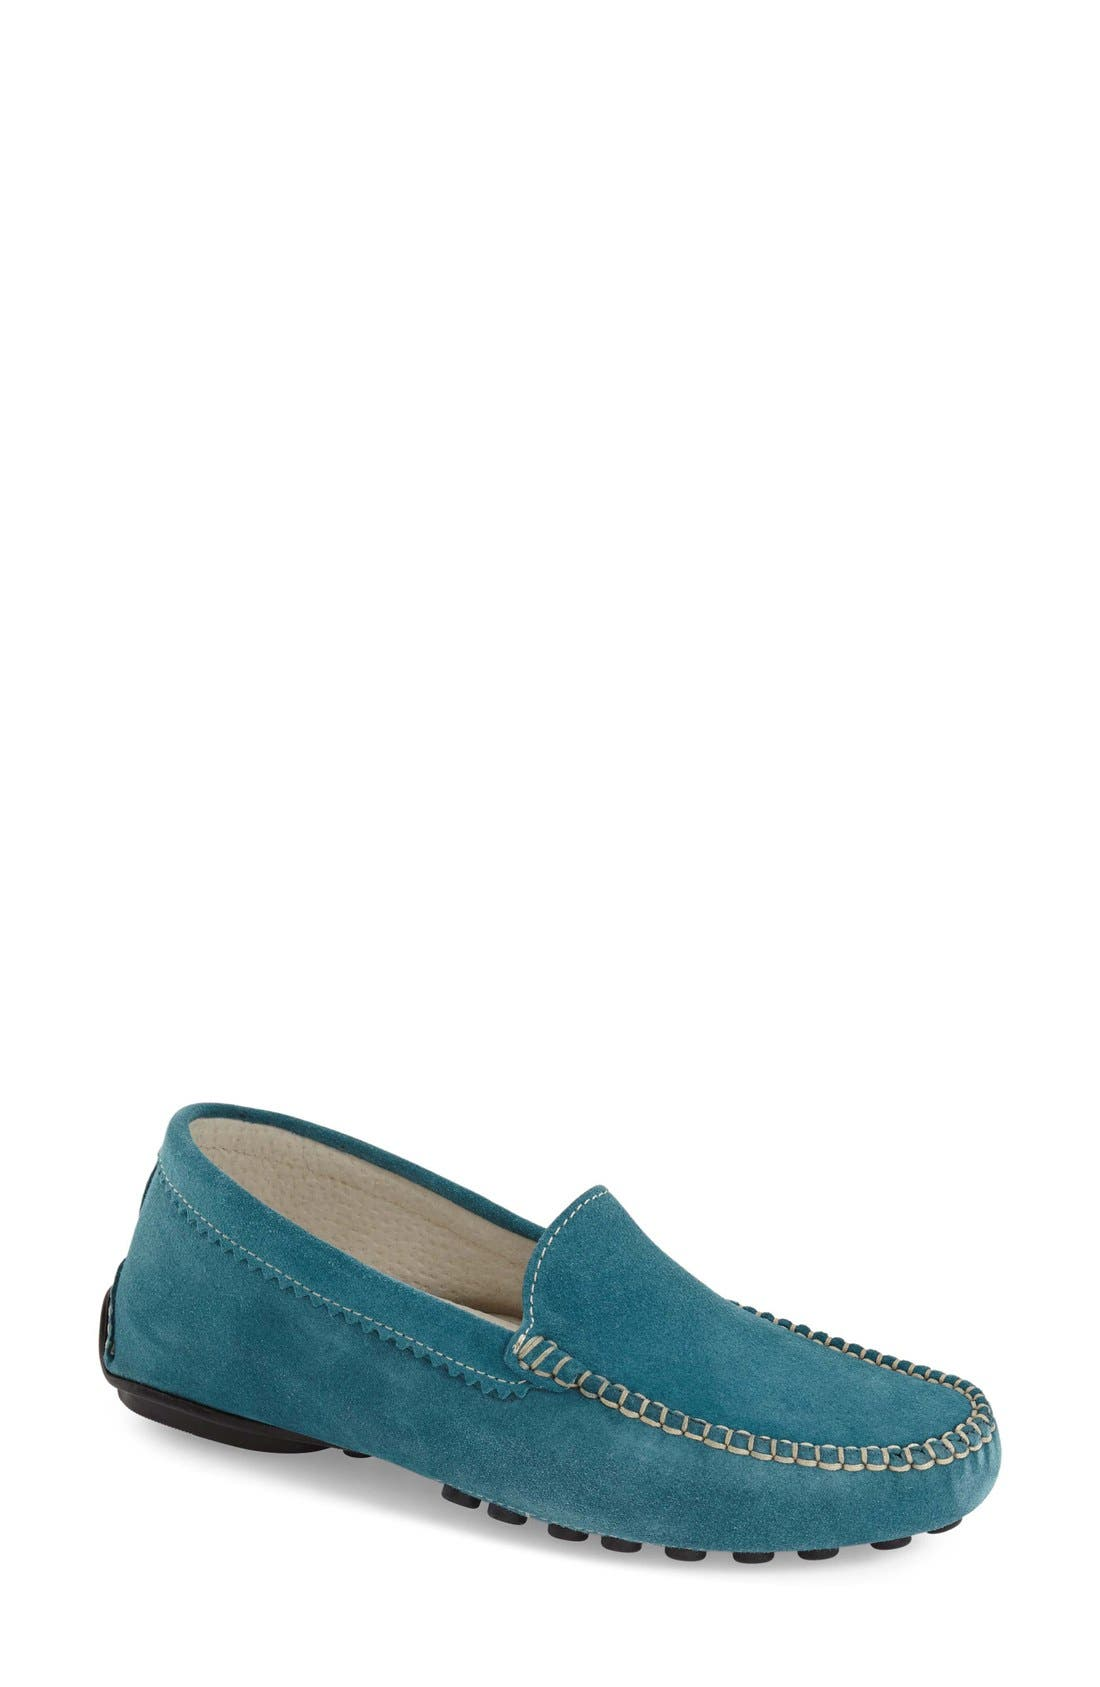 Main Image - French Sole 'Stella' Loafer